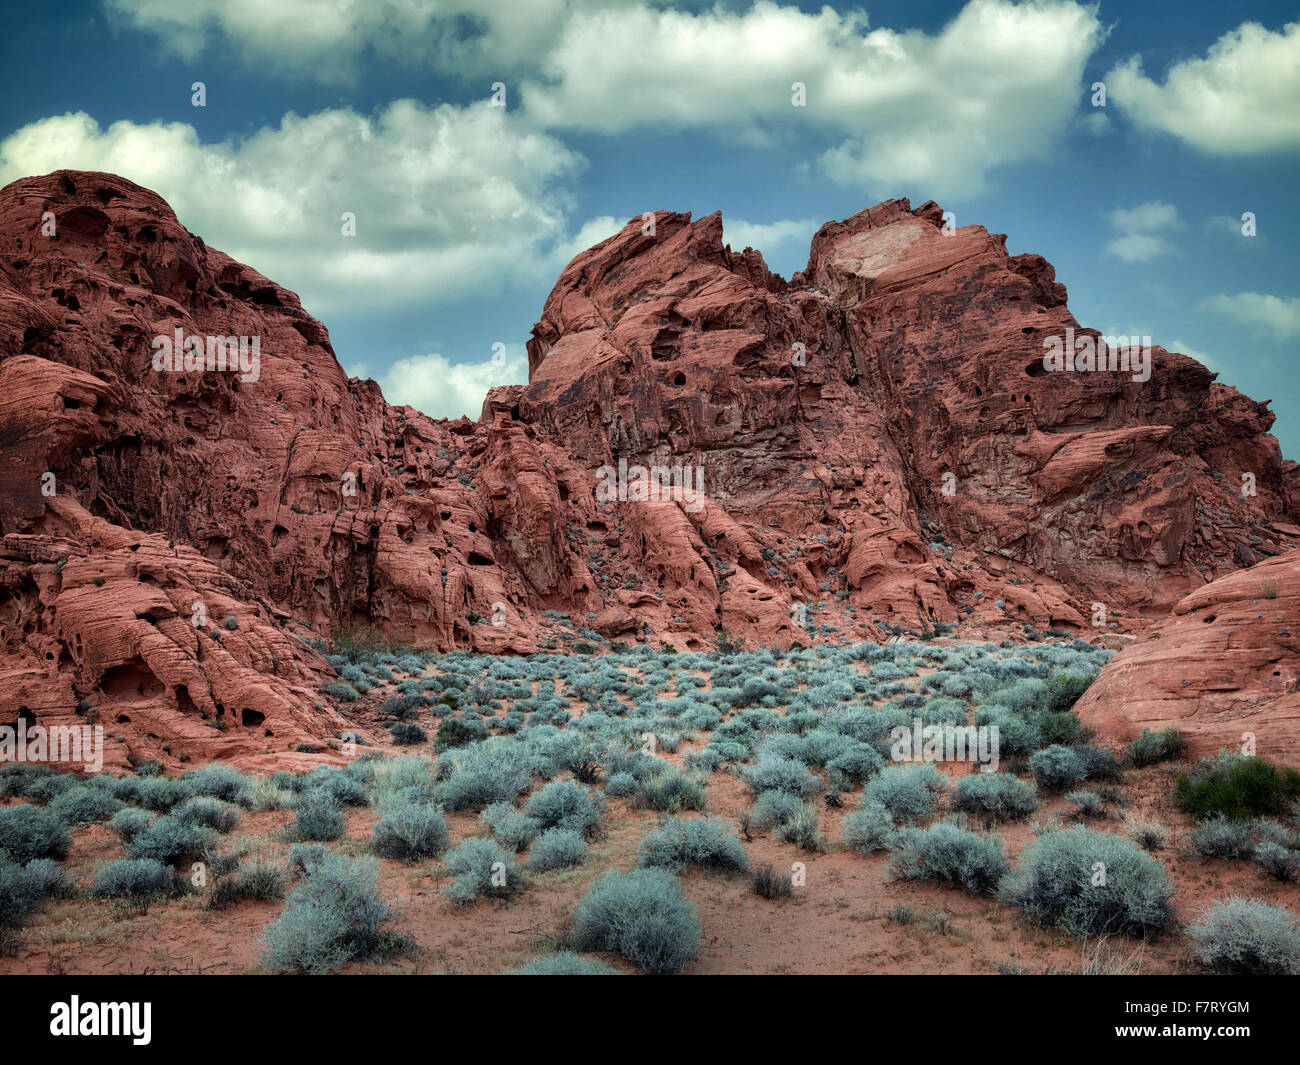 Sagebrush and rock formation. Valley of Fire State Park, Nevada - Stock Image